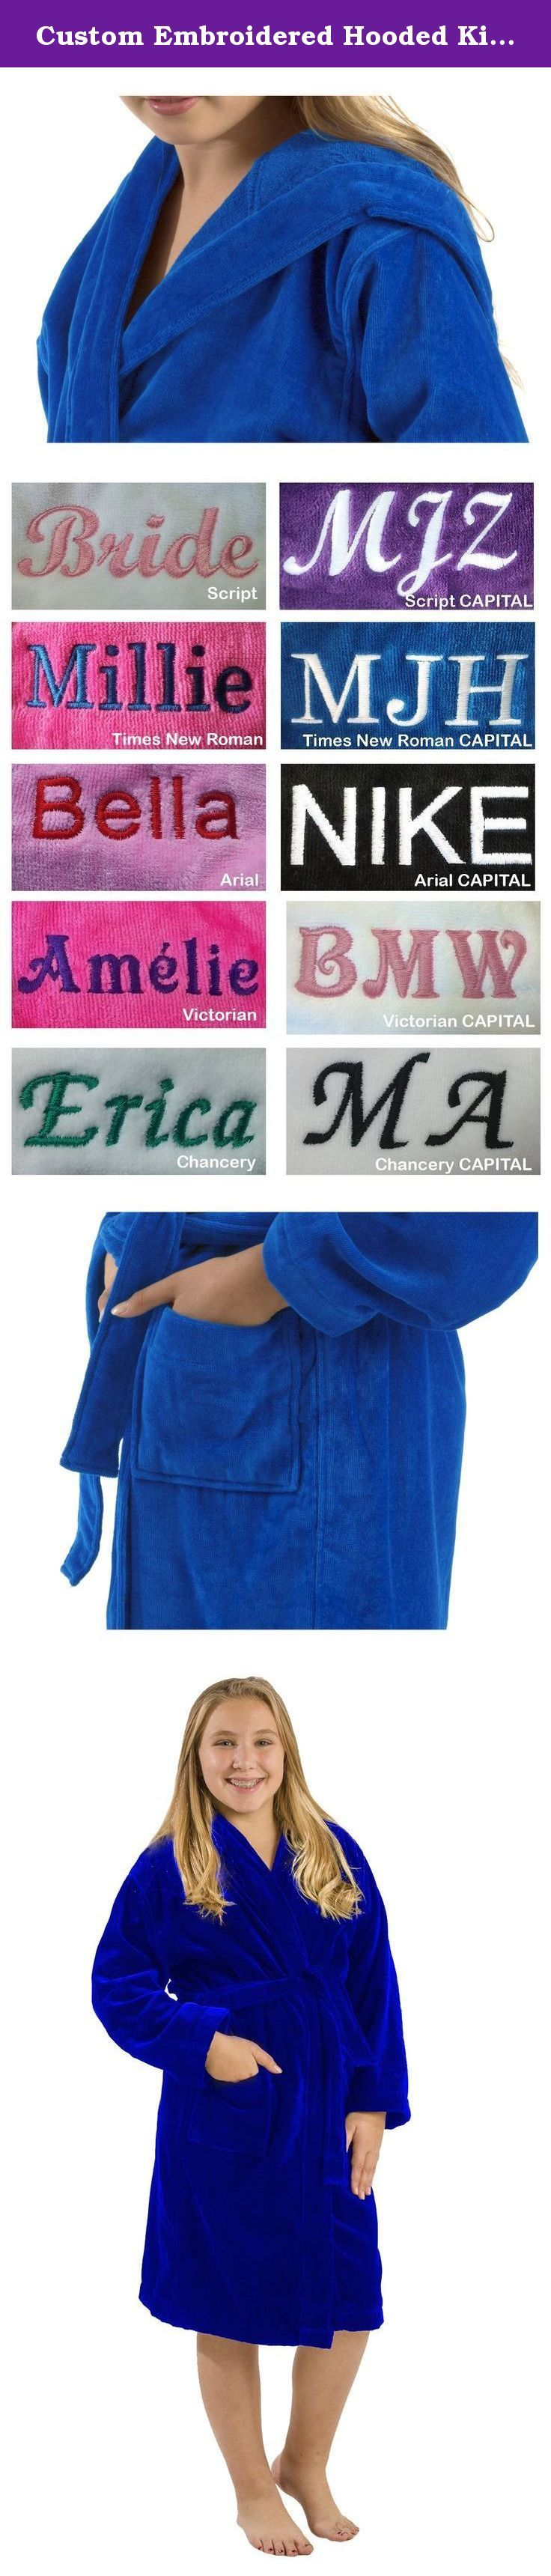 Custom Embroidered Hooded Kids Robes, Royal Blue, SMALL. TERRY VELOUR COTTON HOODED KIDS BATHROBES -Two patch pockets, double stitch for durability. -These kids robes can be used for bath, spa, shower, swimming pool, lounge or sauna. -400 gsm 100% Cotton, 21single/2 ply ring spun yarn loops, triple sheared terry on the outside and loop terry cloth on the inside. -Available Colors: Purple, White, Black,Pink, Fuchsia, Navy, Royal Blue and Red. -Here is the measurement of the Sizes: Hoods…